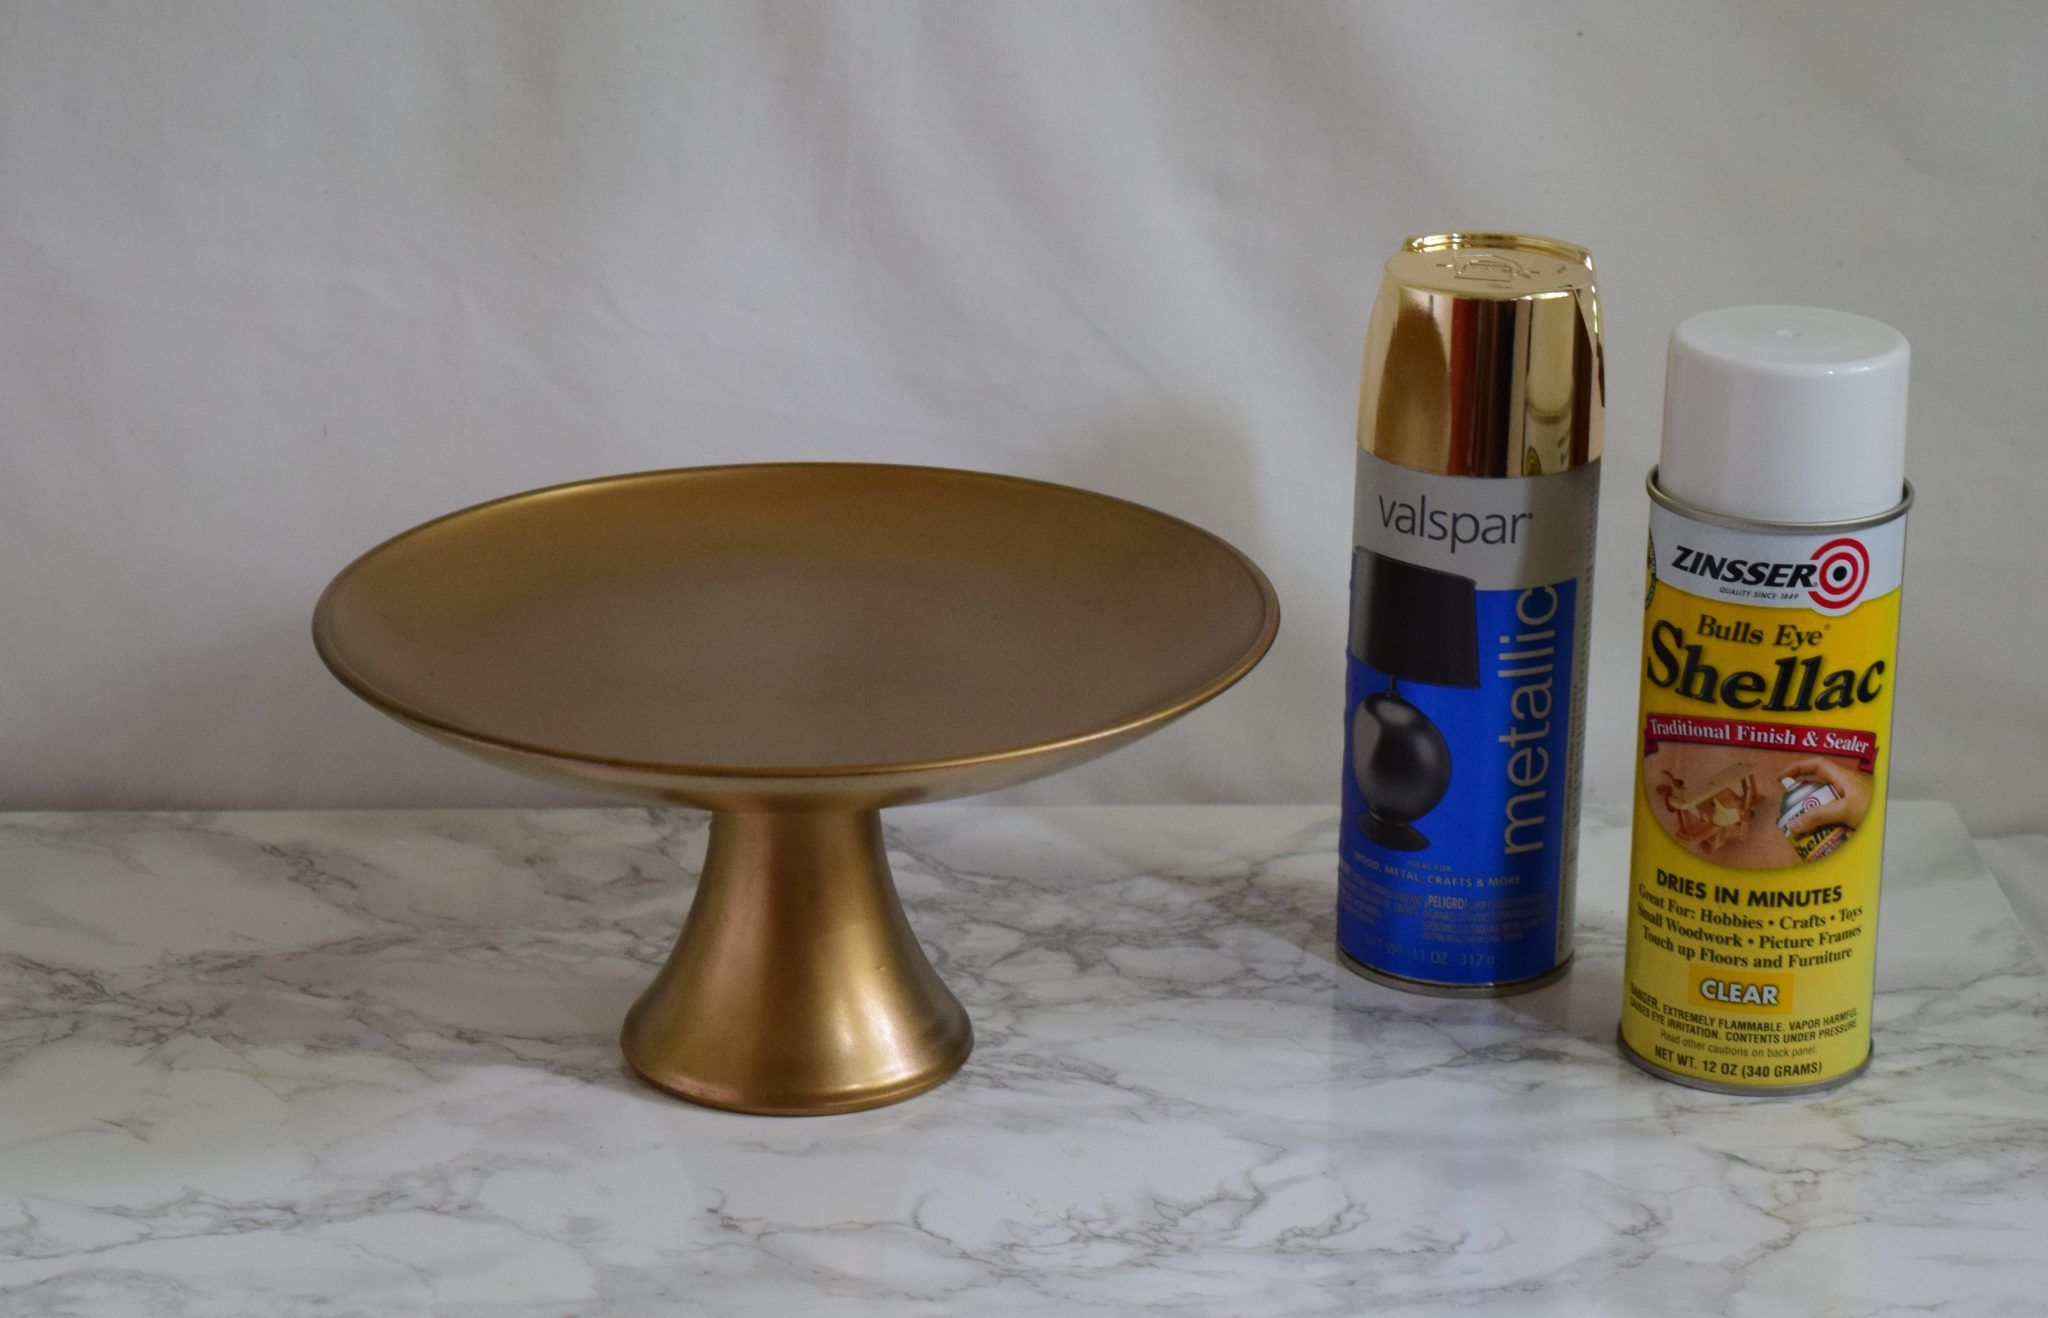 a comparison of metallic spray paints nourish and nestle